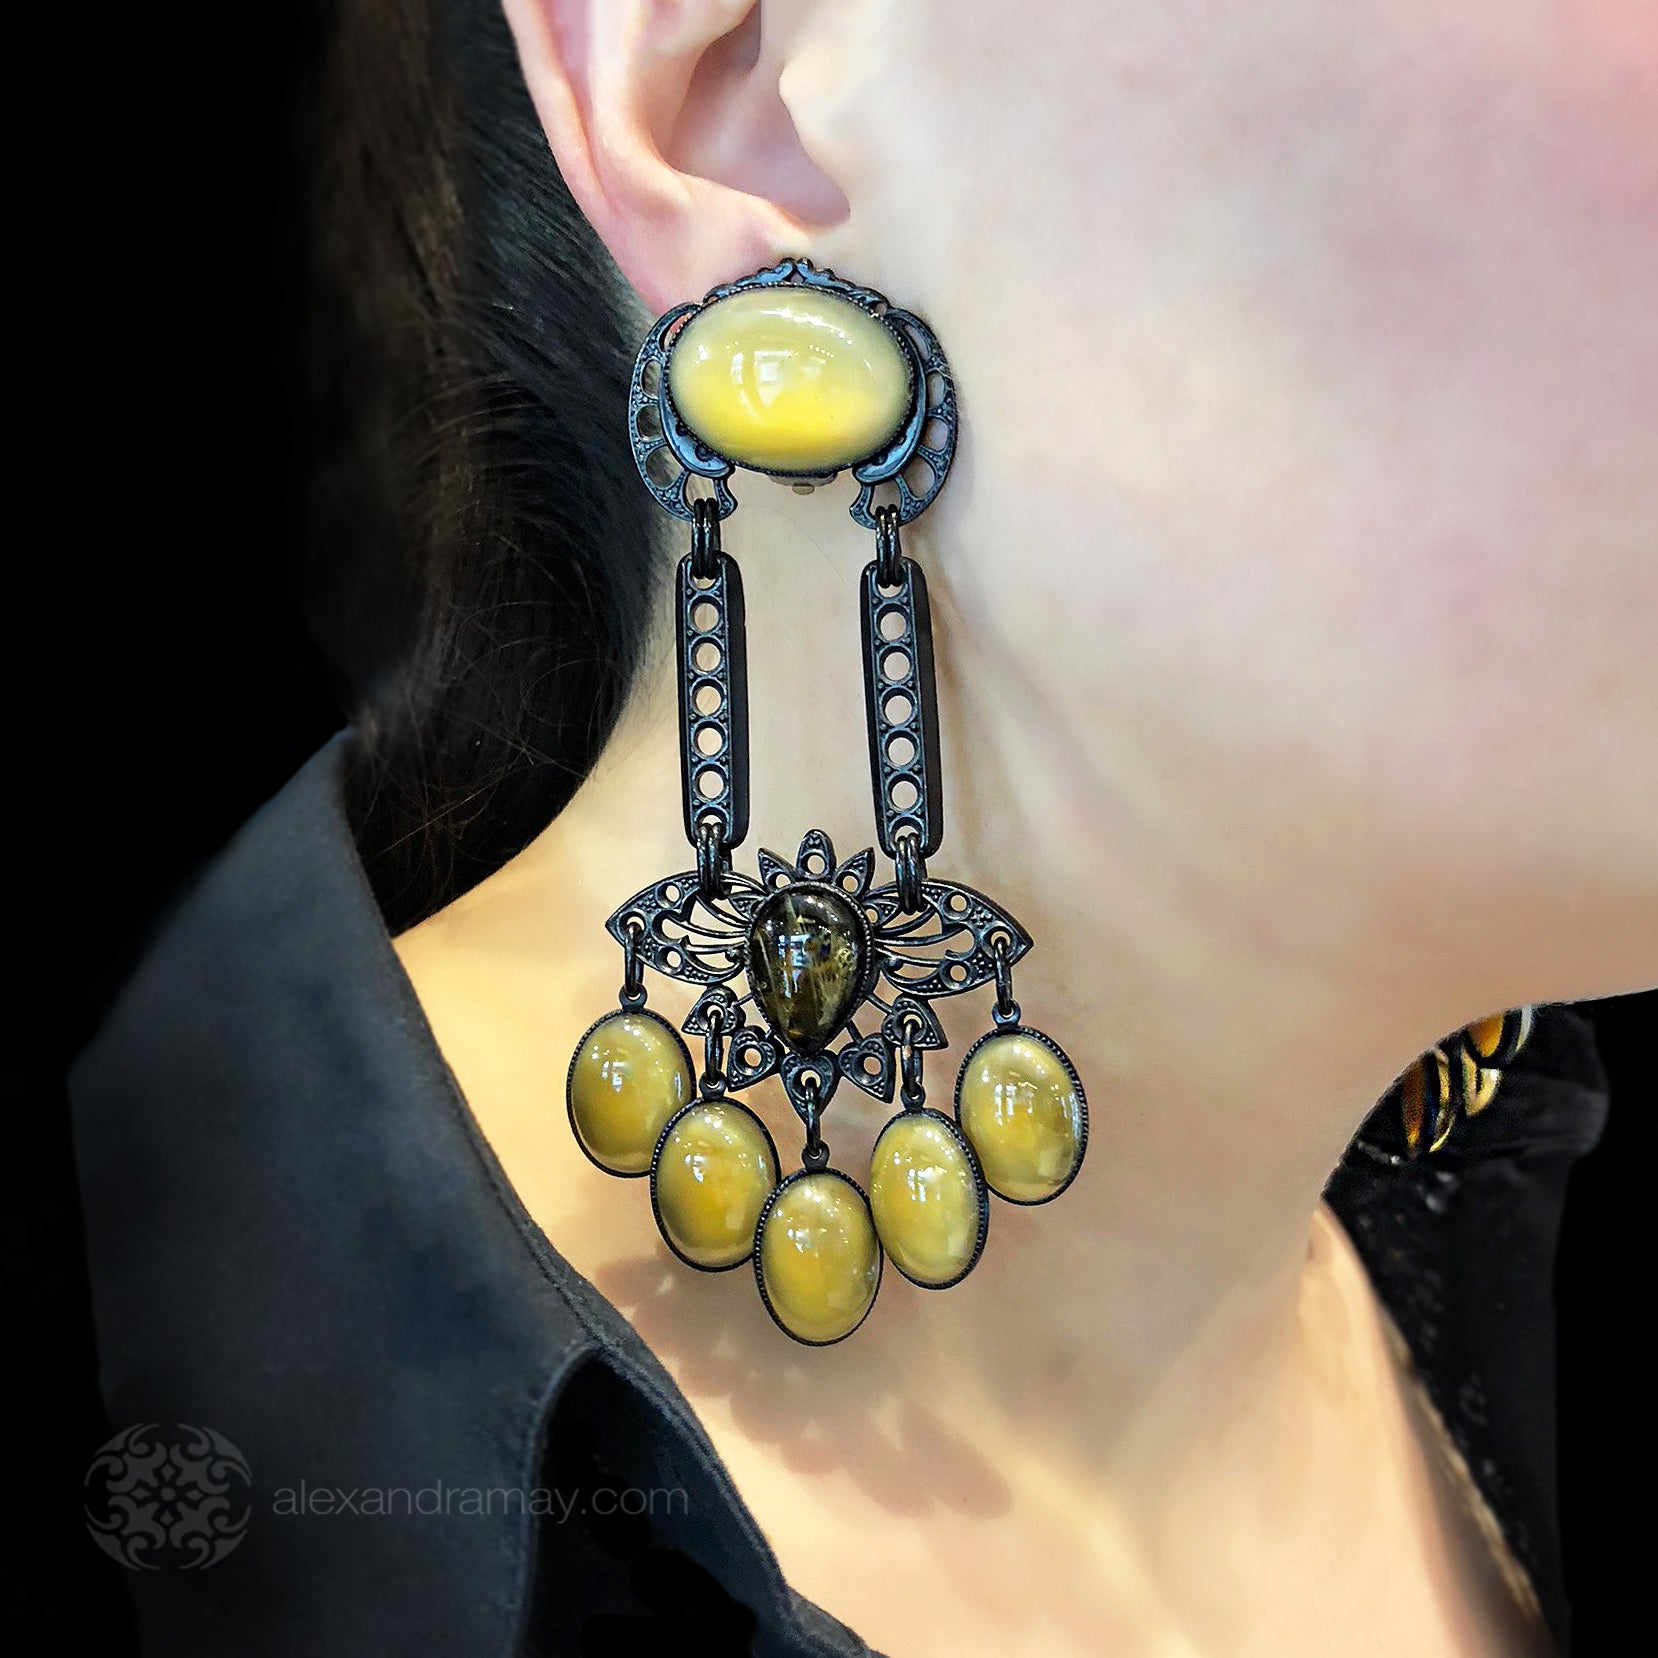 Jean-Louis Blin Black Caramel and Butterscotch Nouveau Earrings (JLB300) Model